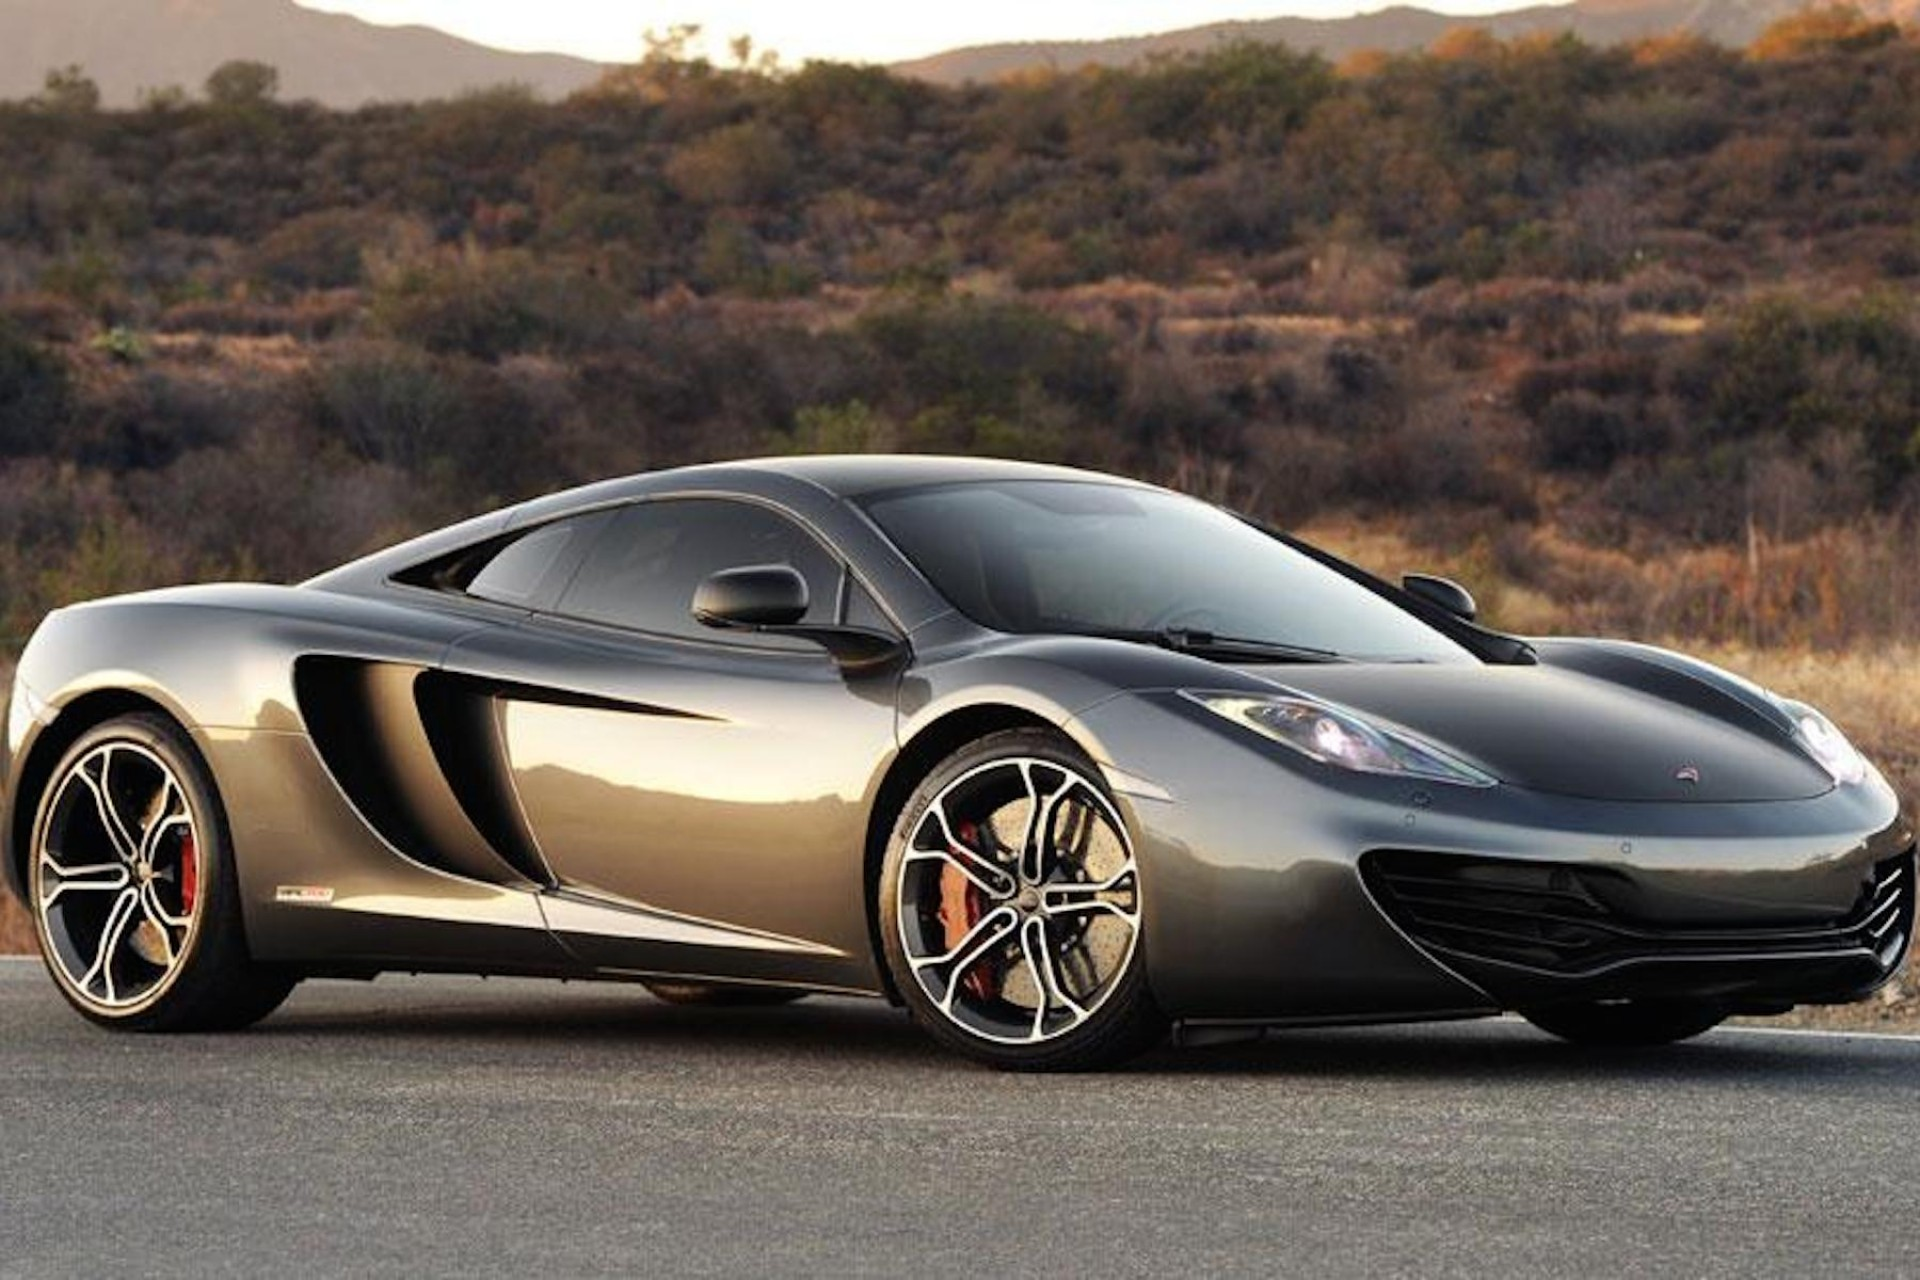 McLaren MP4-12C crap like me and my whole family of alcoholics